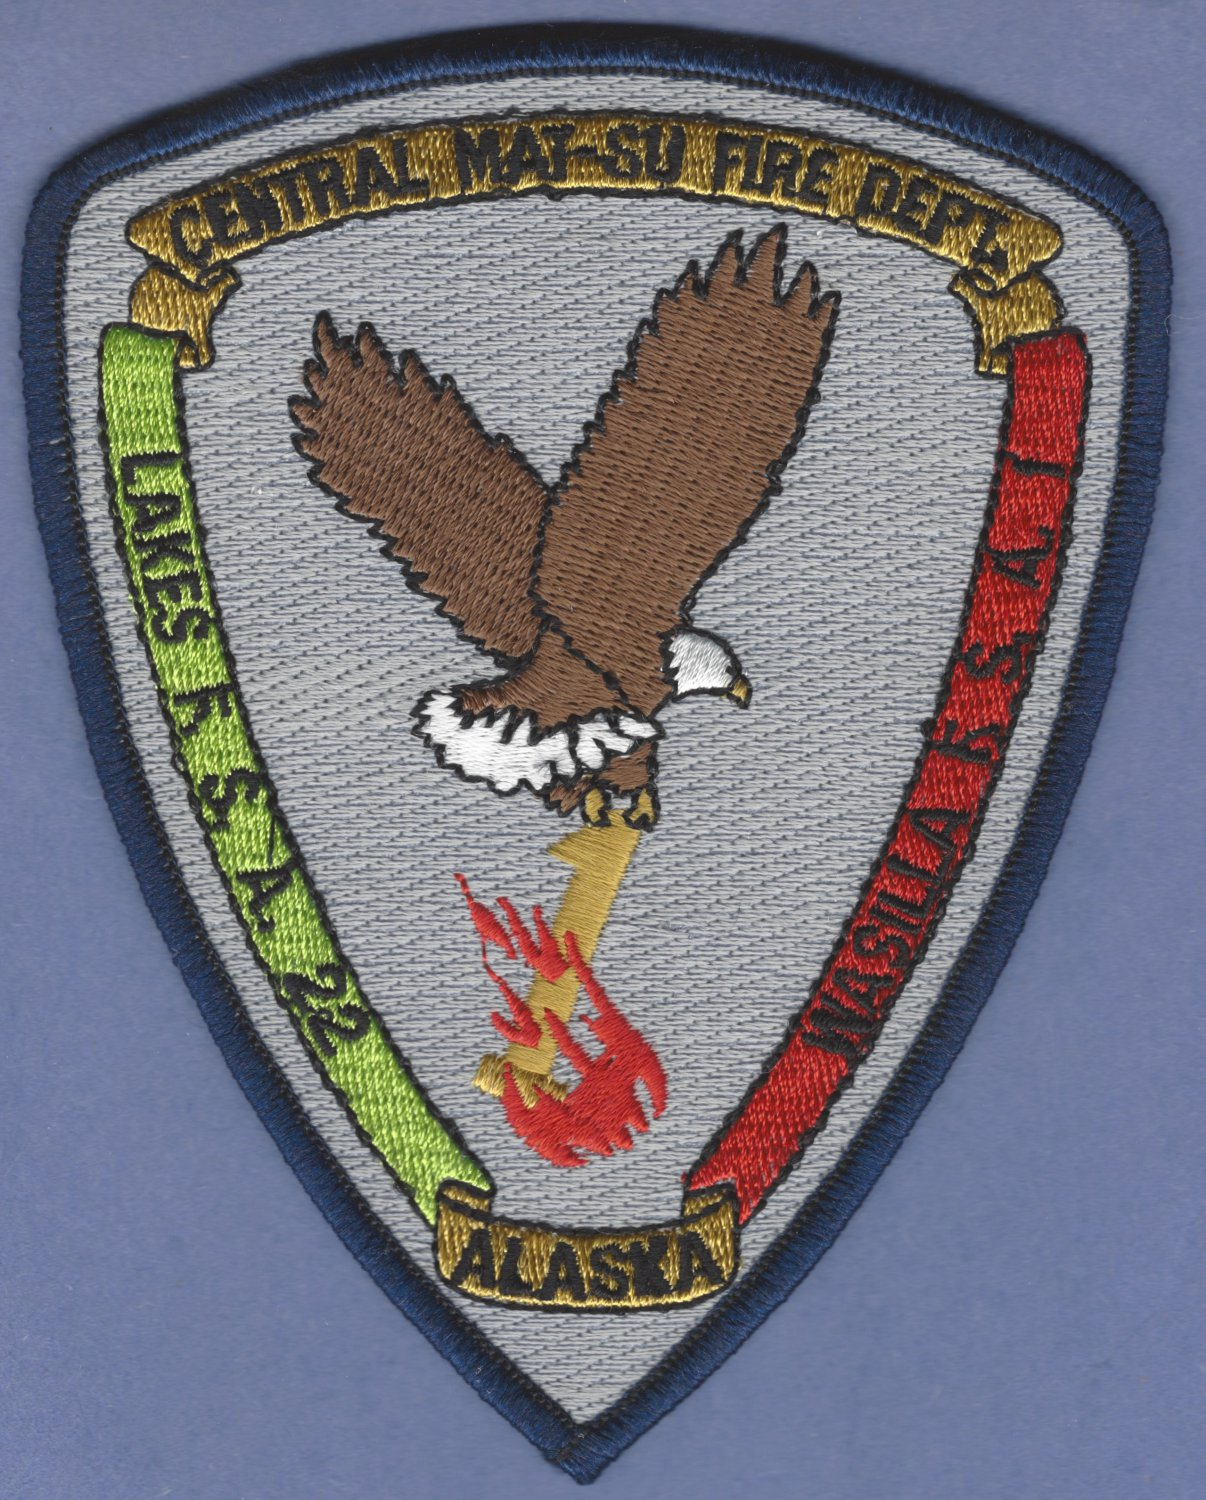 CENTRAL MAT-SU ALASKA FIRE RESCUE PATCH